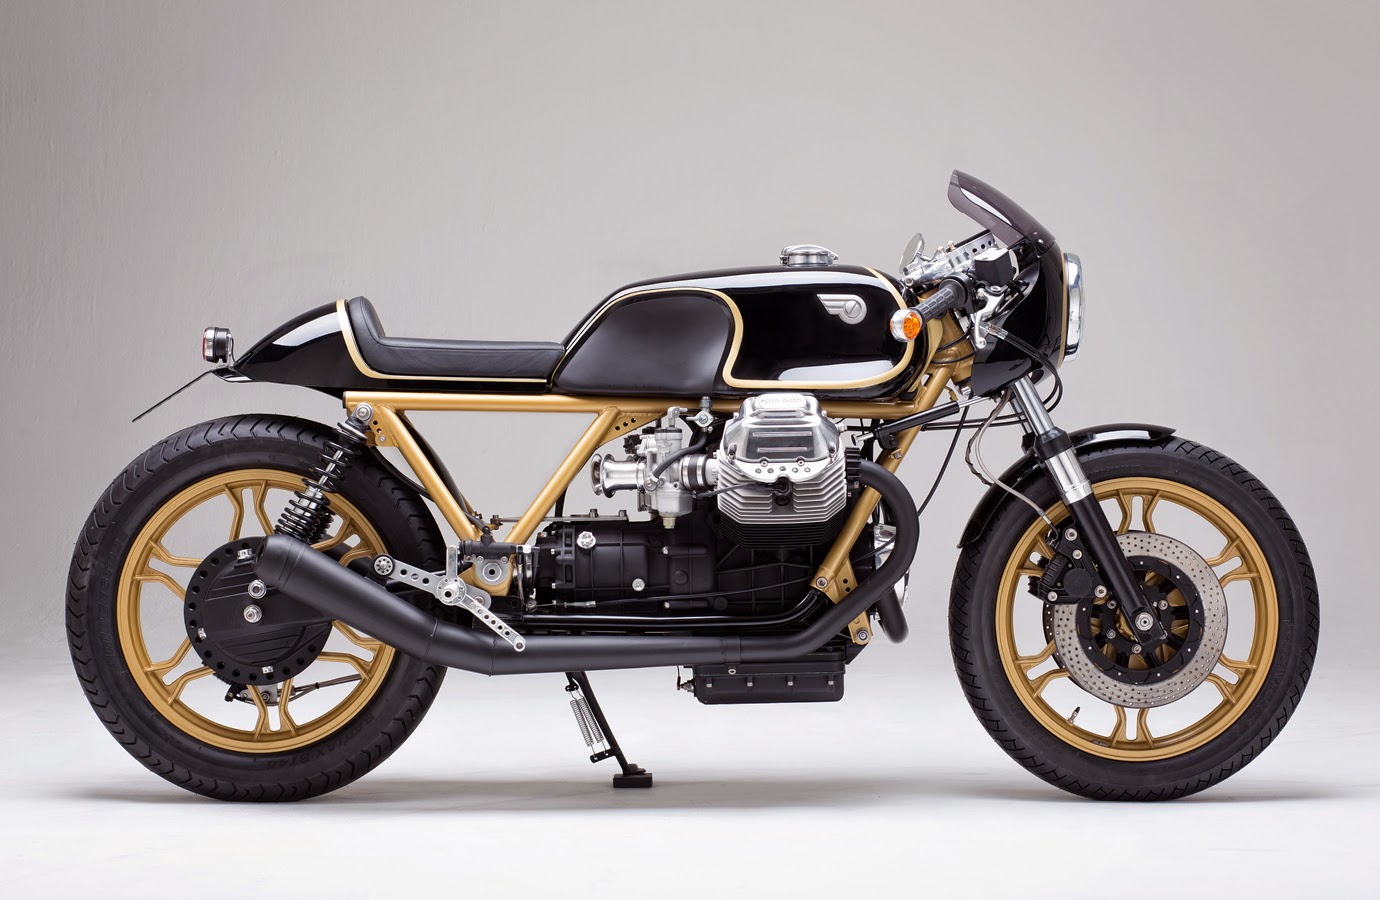 racing caf moto guzzi le mans iii 850 maschine 11 by kaffeemaschine. Black Bedroom Furniture Sets. Home Design Ideas